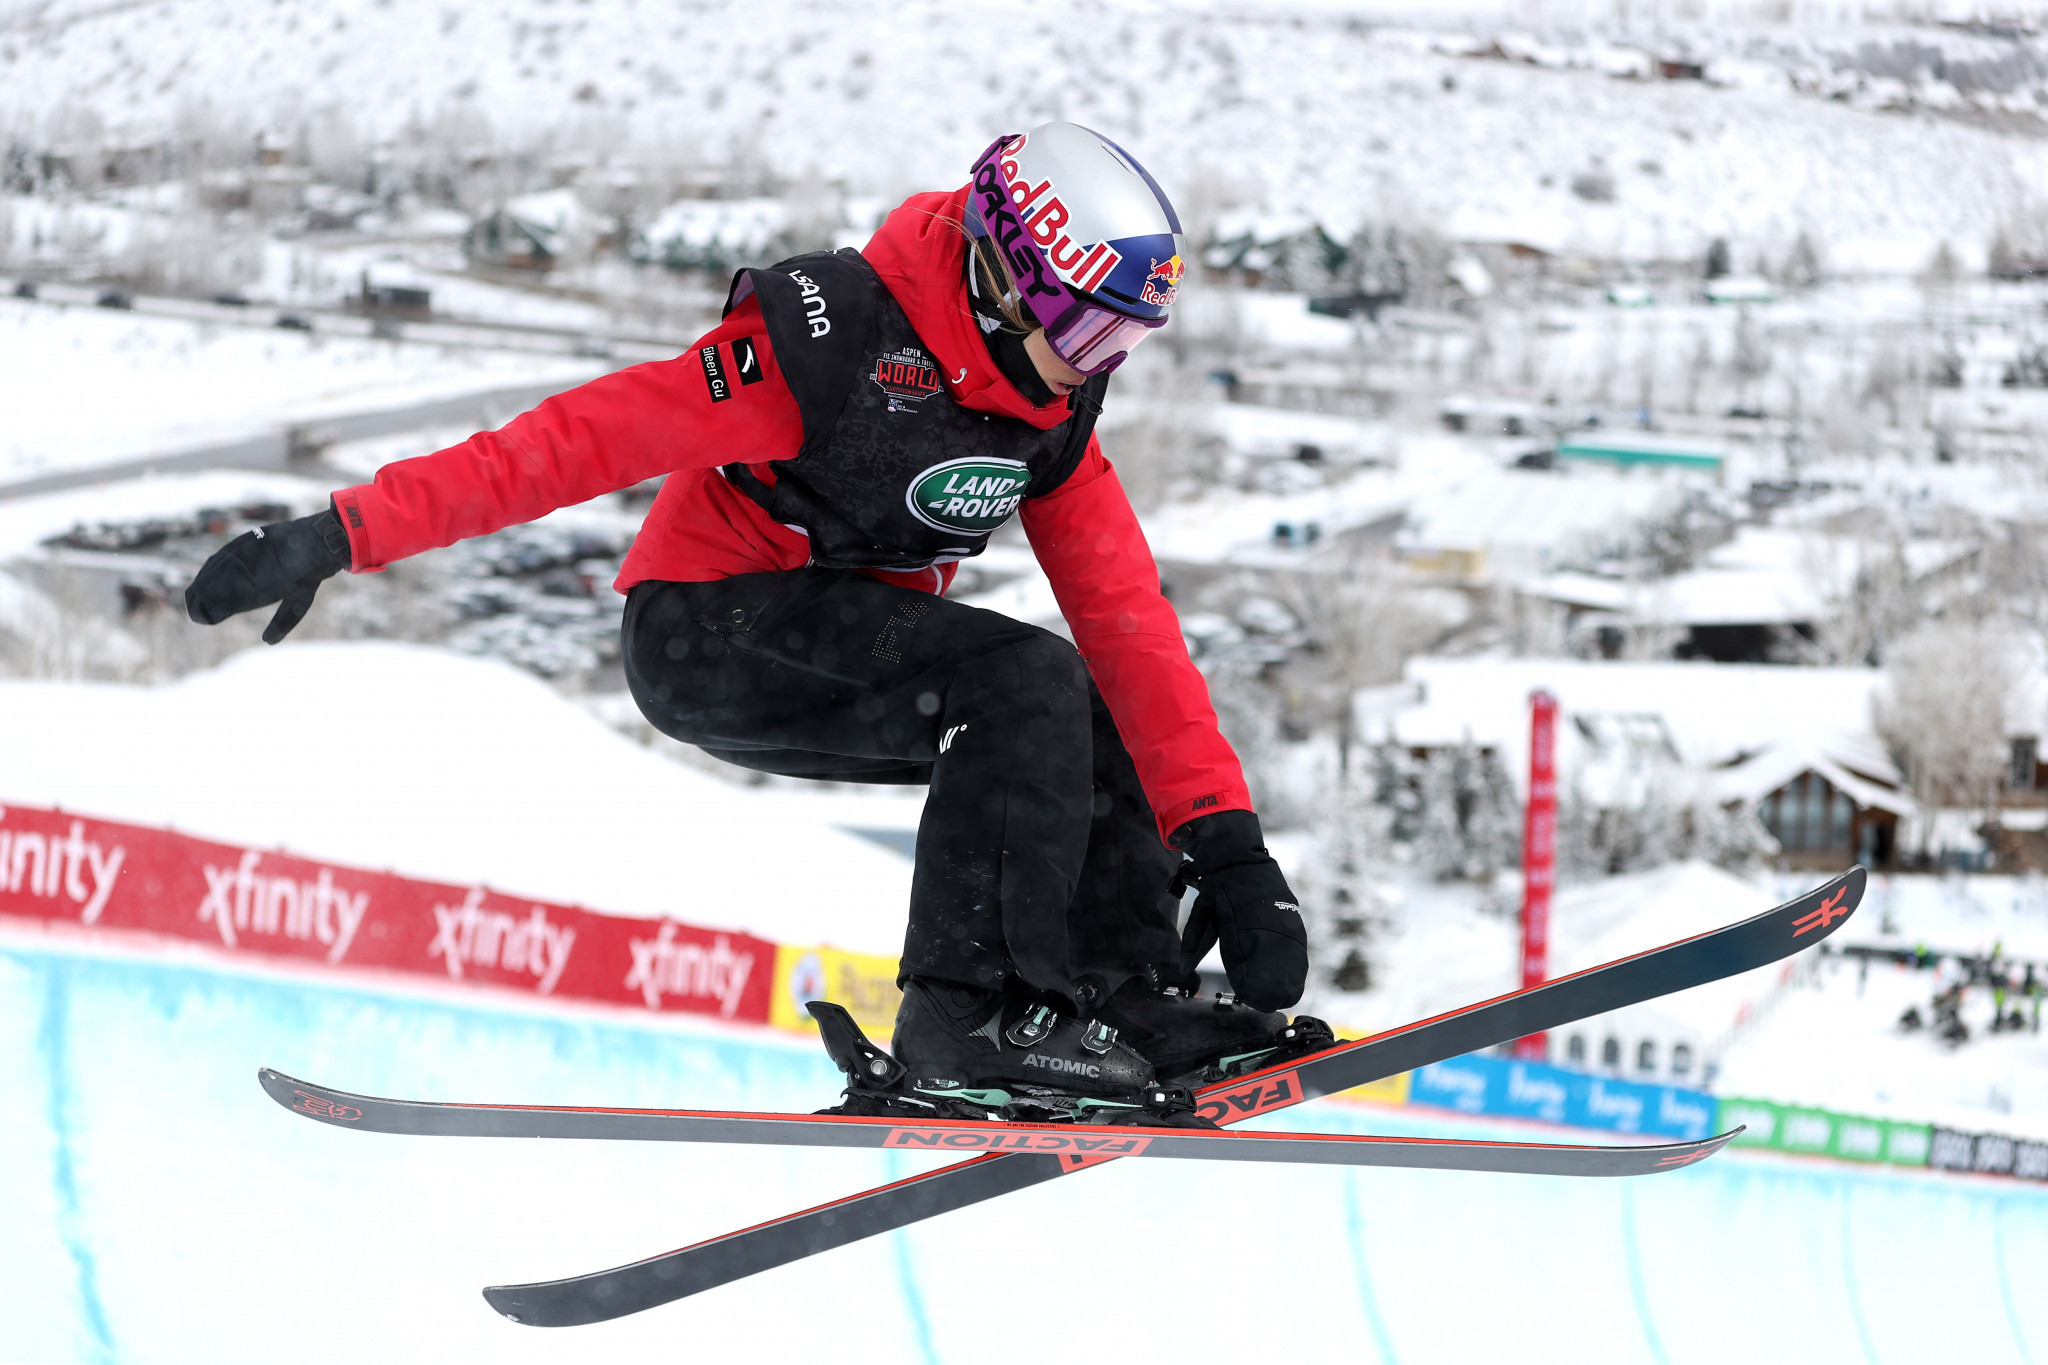 Eileen Gu won her second gold of the FIS Snowboard and Freeski World Championships in Aspen after triumphing in the women's freeski slopestyle ©Getty Images